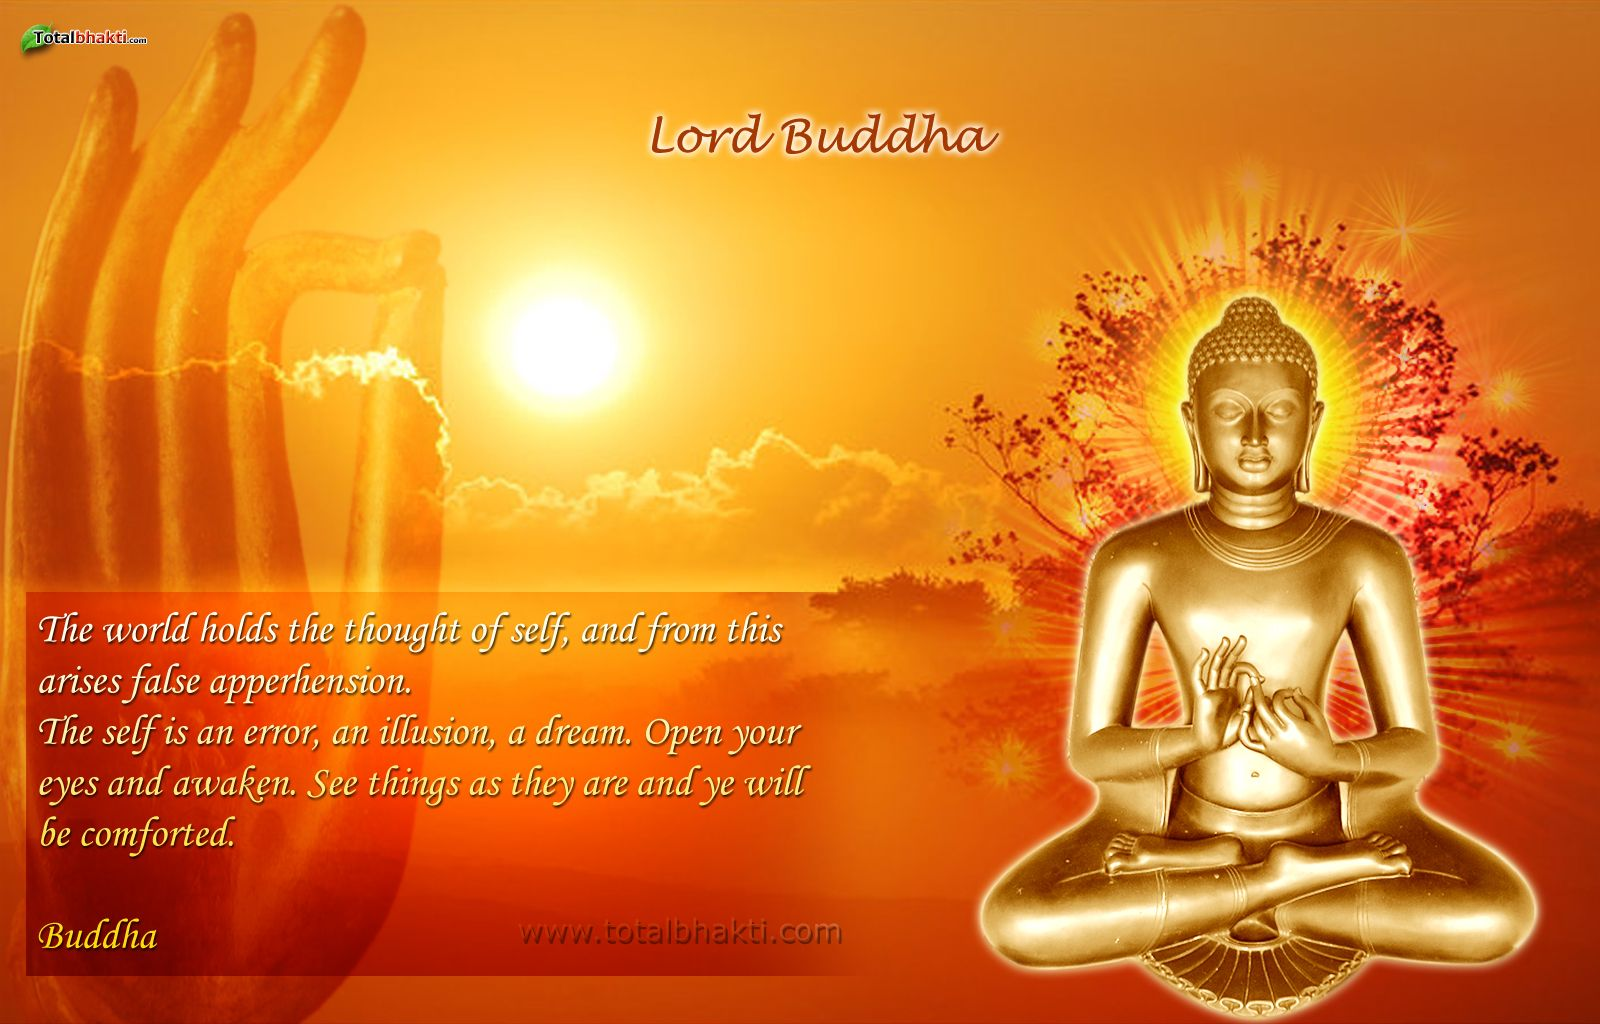 buddha images Lord Buddha HD wallpapers QUOTES & WORDS